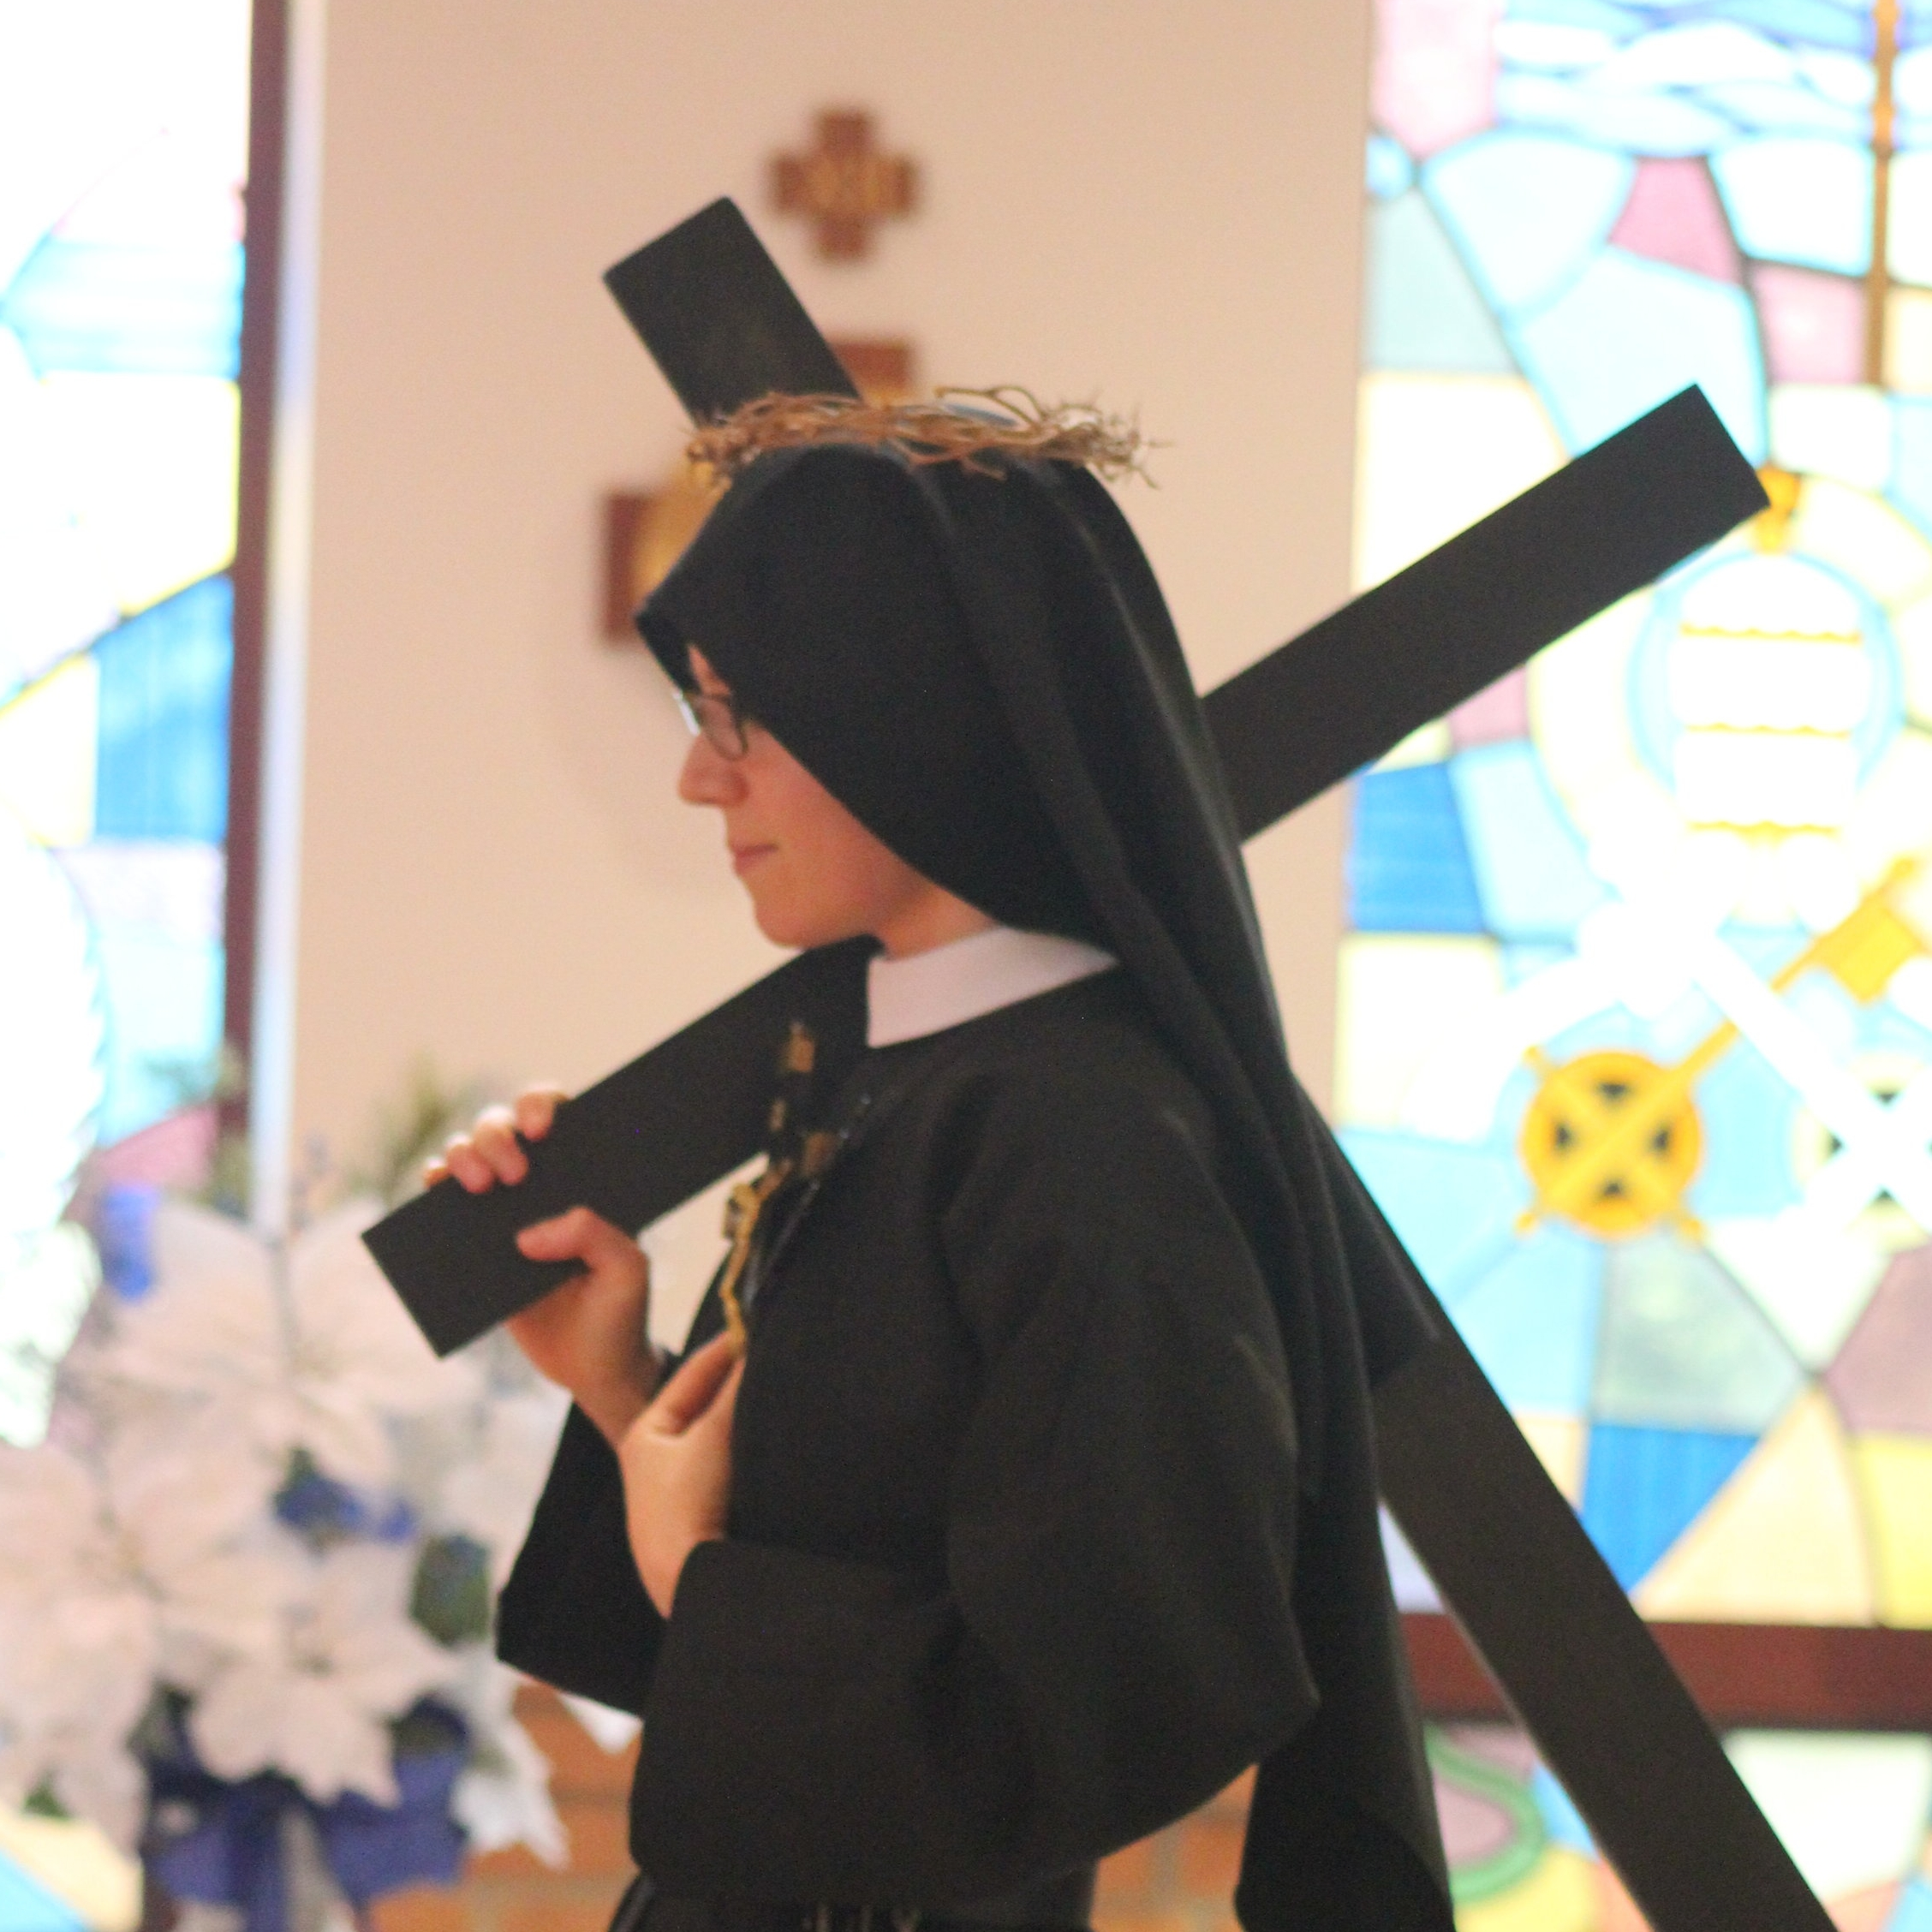 Spring 2018 Newsletter - Featuring Sr. Maria Faustina's first profession of vows & some big projects on the monastery grounds